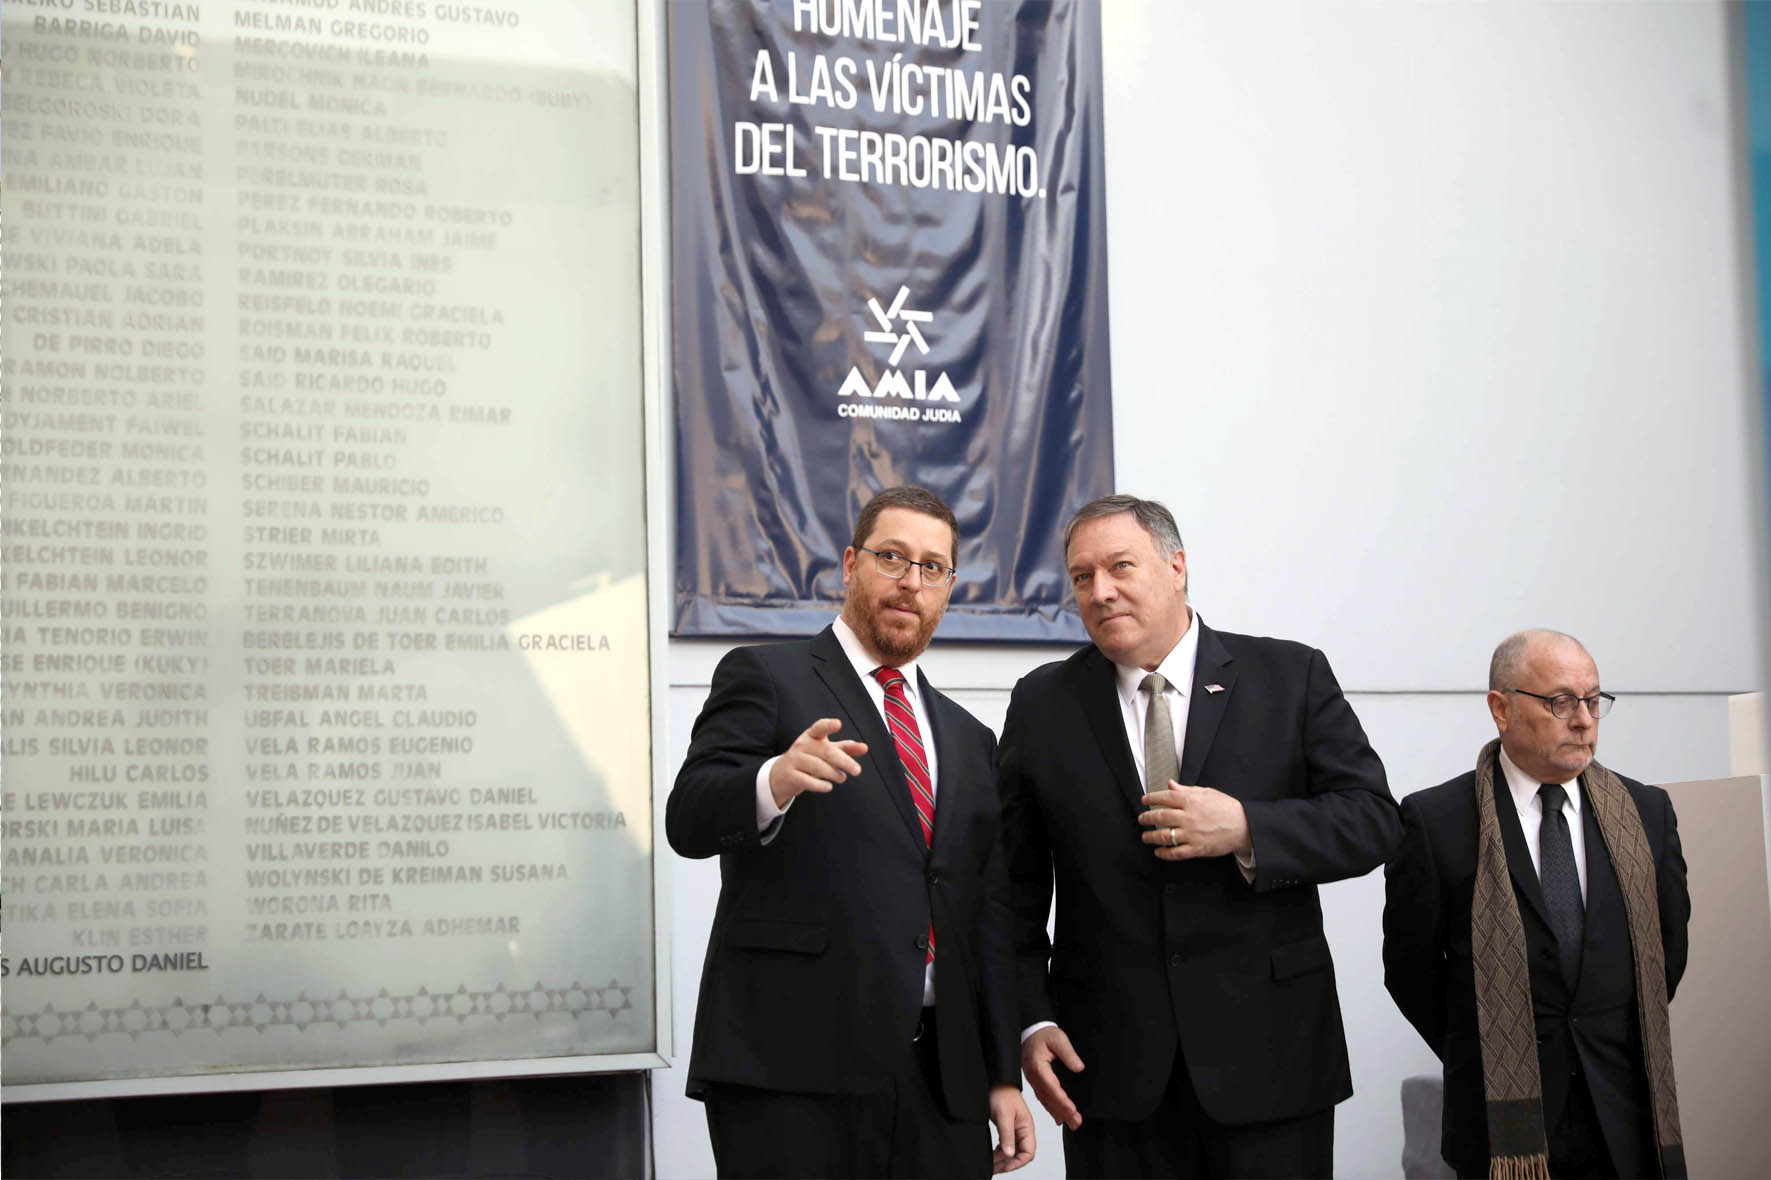 Ghosts of terror. AIMA President Ariel Eichbaum (L), US Secretary of State Mike Pompeo (C) and Argentine Foreign Minister Jorge Faurie attend a memorial service to honour the 85 people killed in Argentina's worst terrorist attack, in Buenos Aires, July 19. (AP)